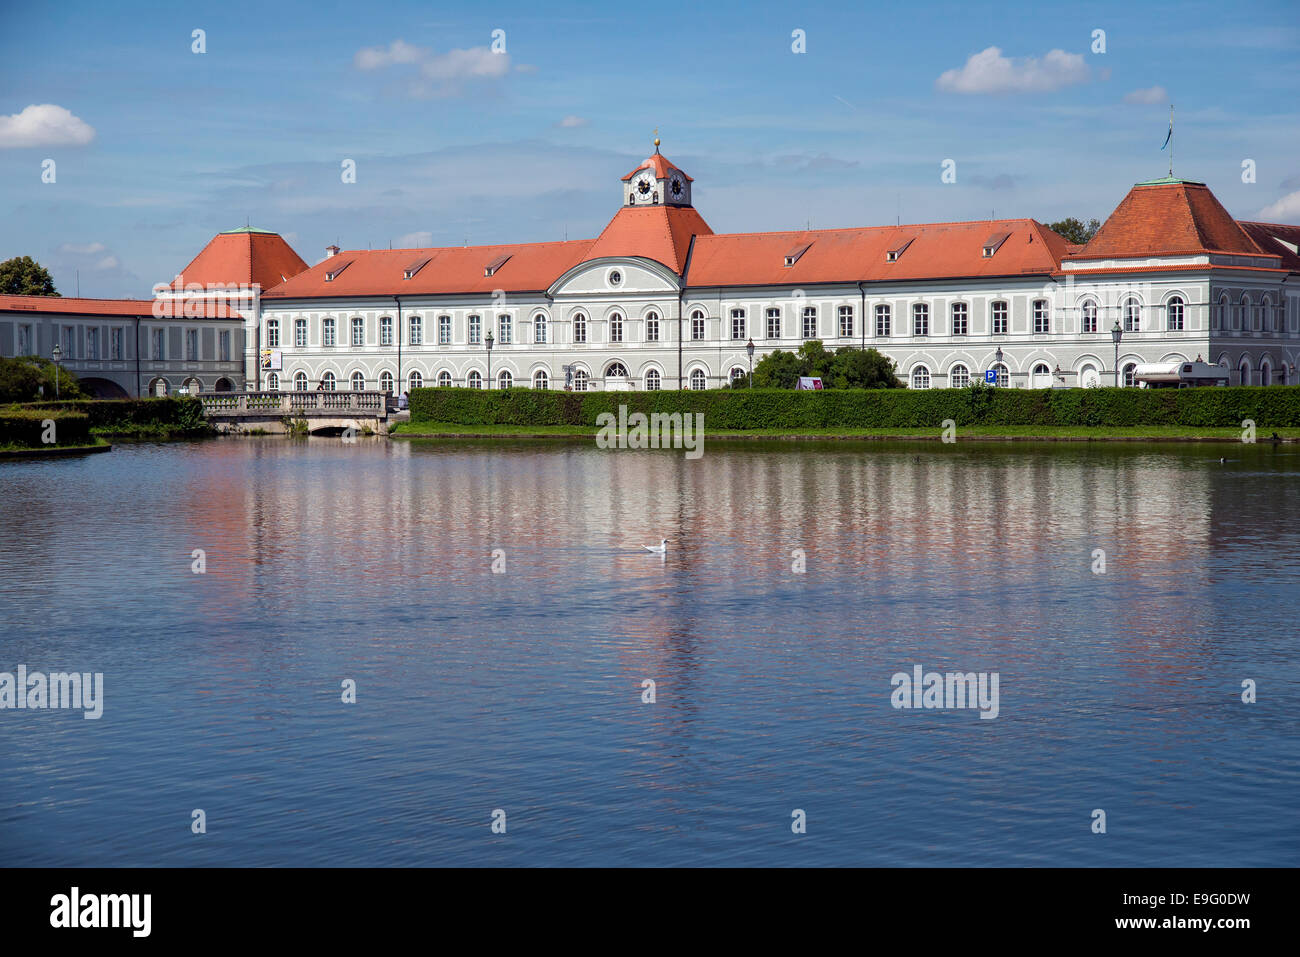 The right wing of the Nymphenburg Palace,  Munich,  München, capital state of Bavaria, Germany, Europe - Stock Image